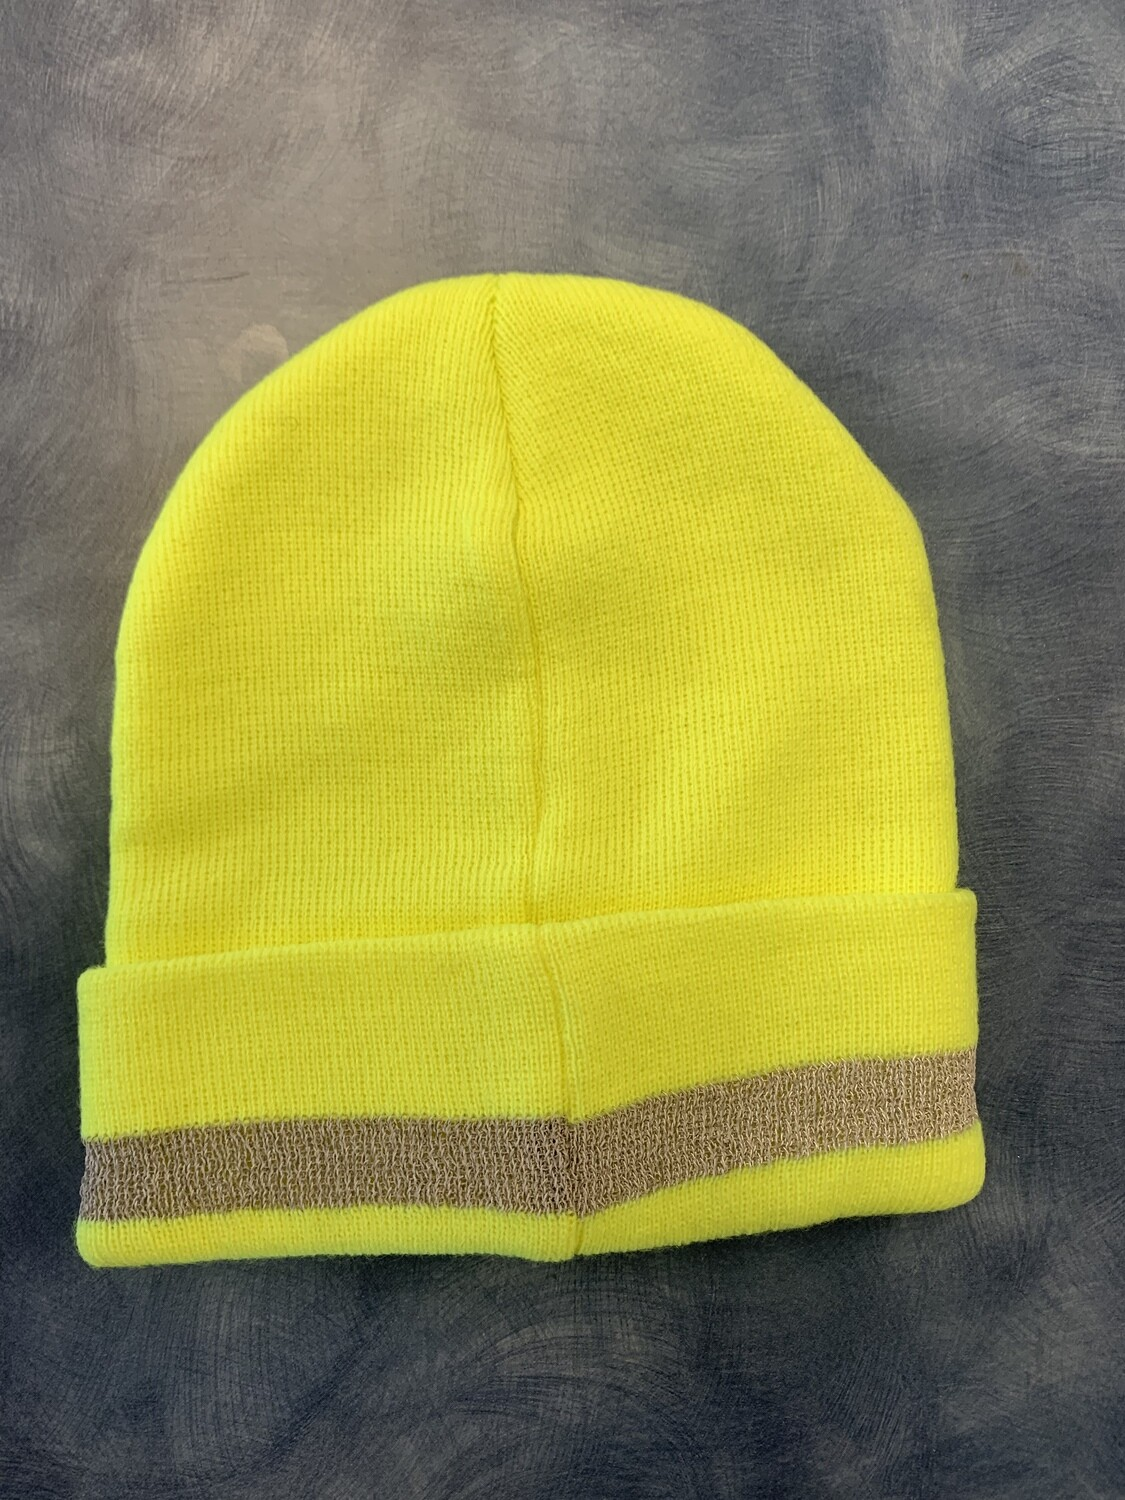 NEON COLOR KNITTED STRETCH WINTER HAT WITH REFLECTIVE STRIPE